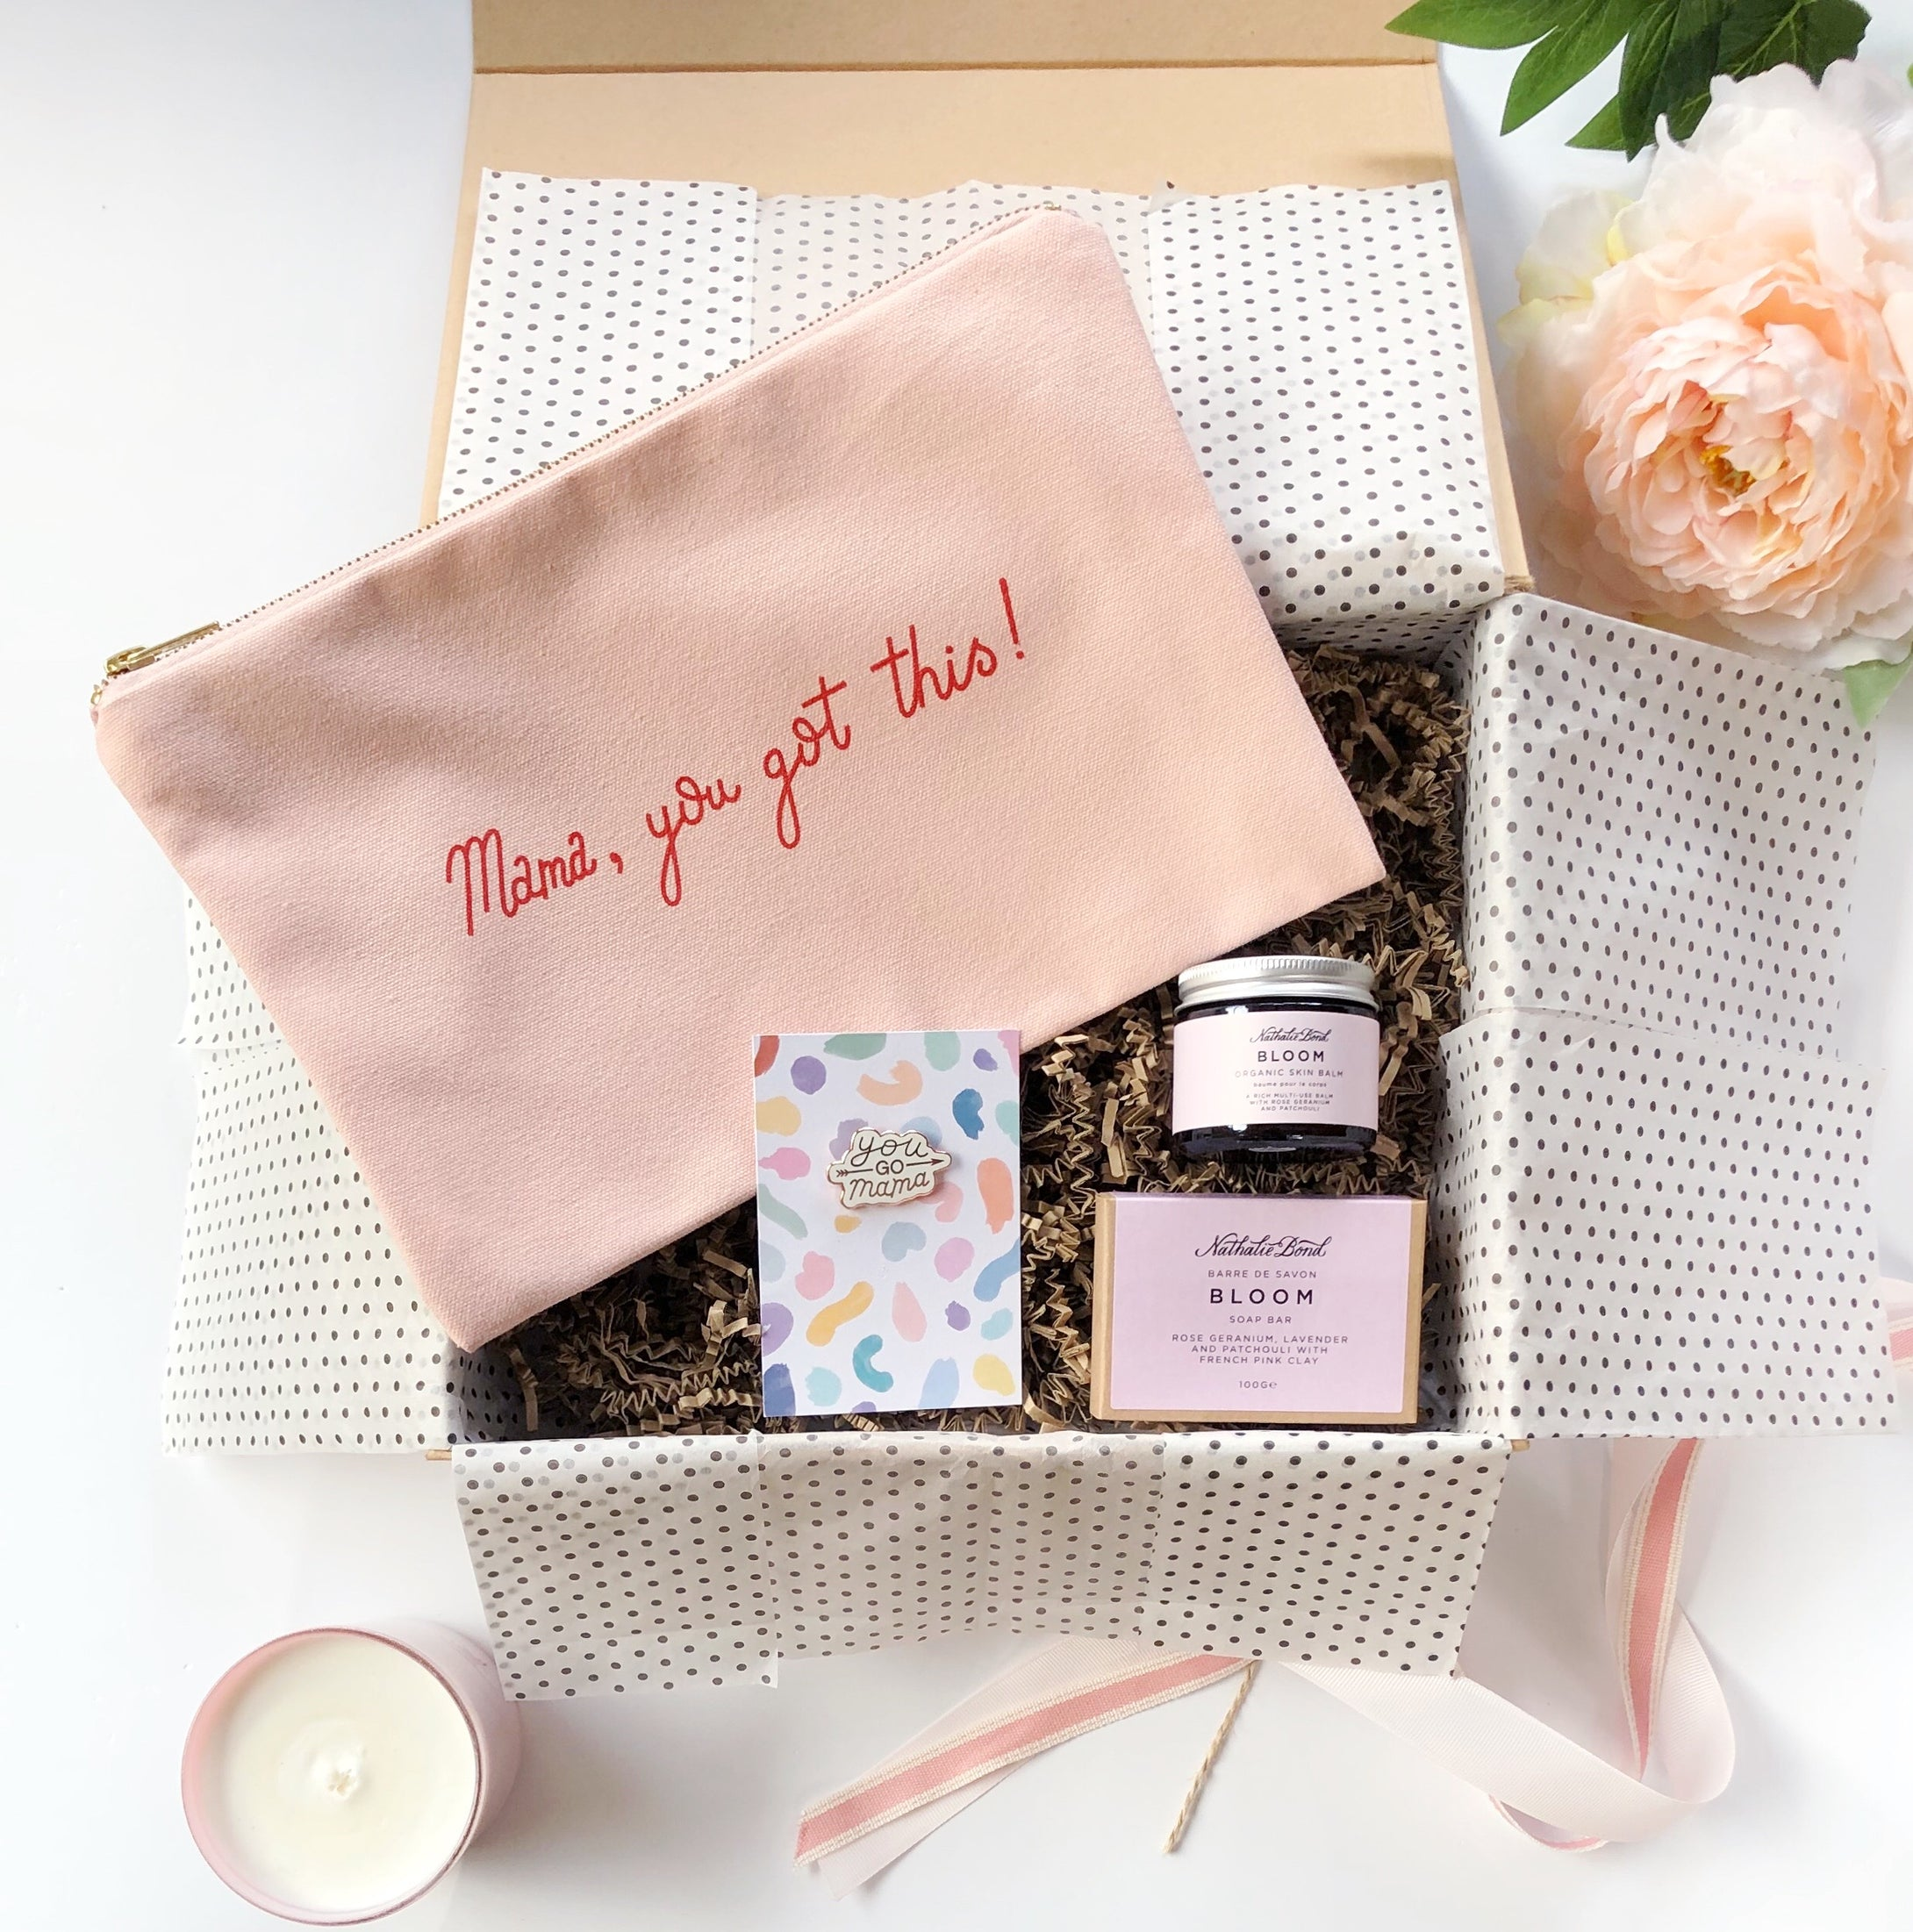 'You got this' Luxe Gift box